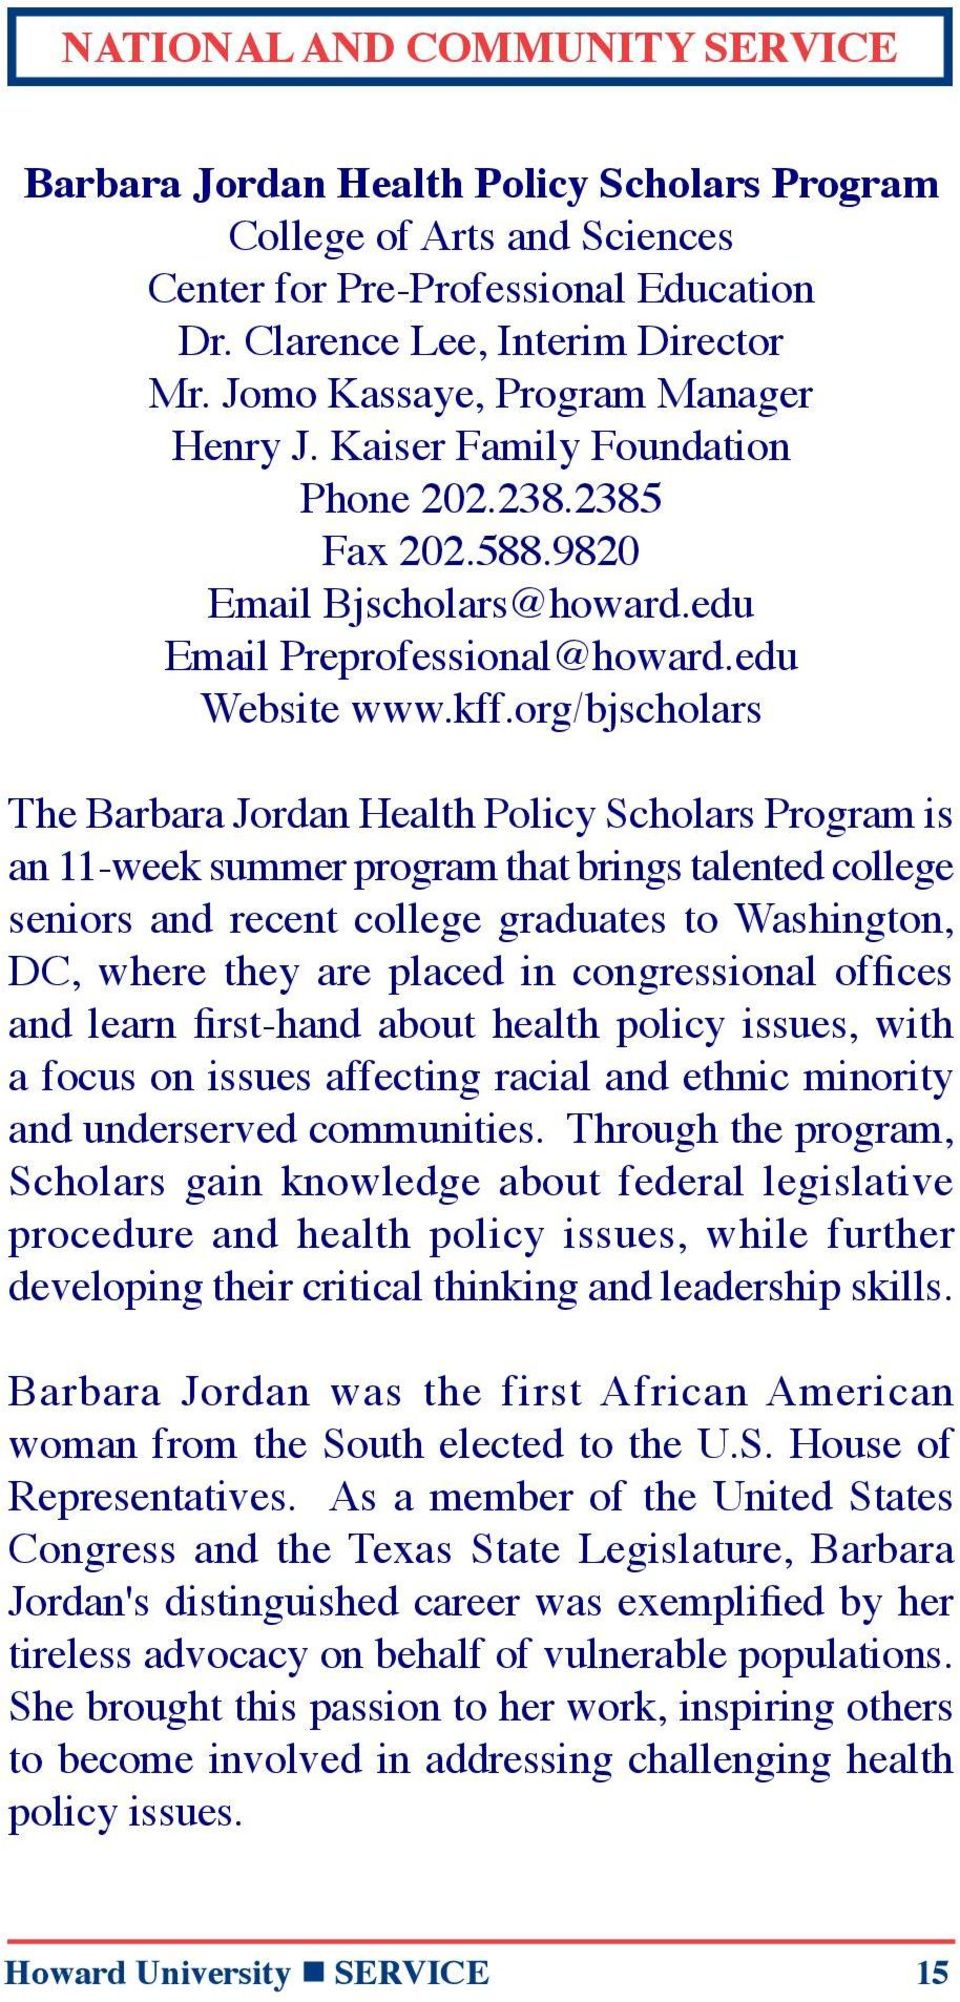 org/bjscholars The Barbara Jordan Health Policy Scholars Program is an 11-week summer program that brings talented college seniors and recent college graduates to Washington, DC, where they are